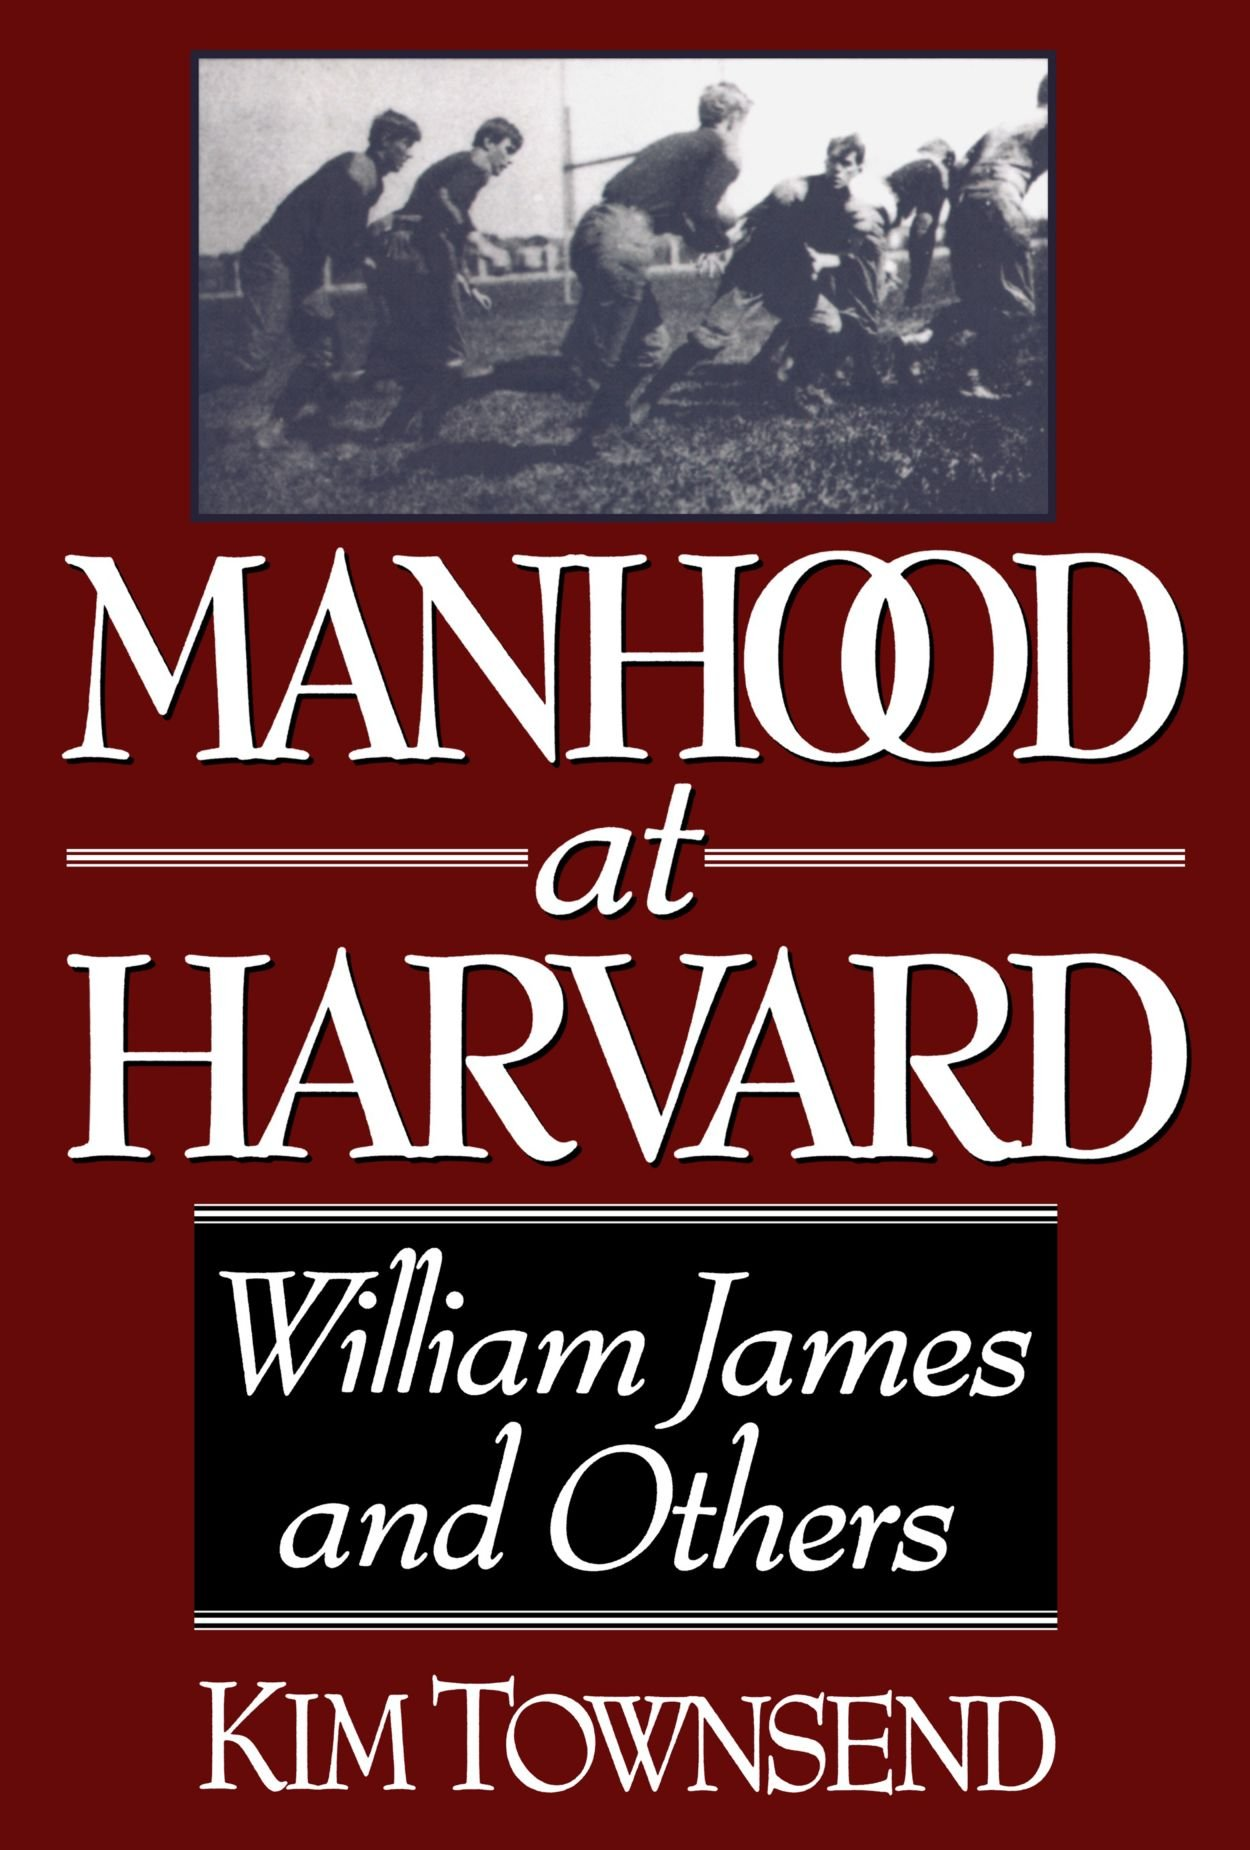 Buy Manhood at Harvard: William James and Others Book Online at Low Prices  in India | Manhood at Harvard: William James and Others Reviews & Ratings  ...